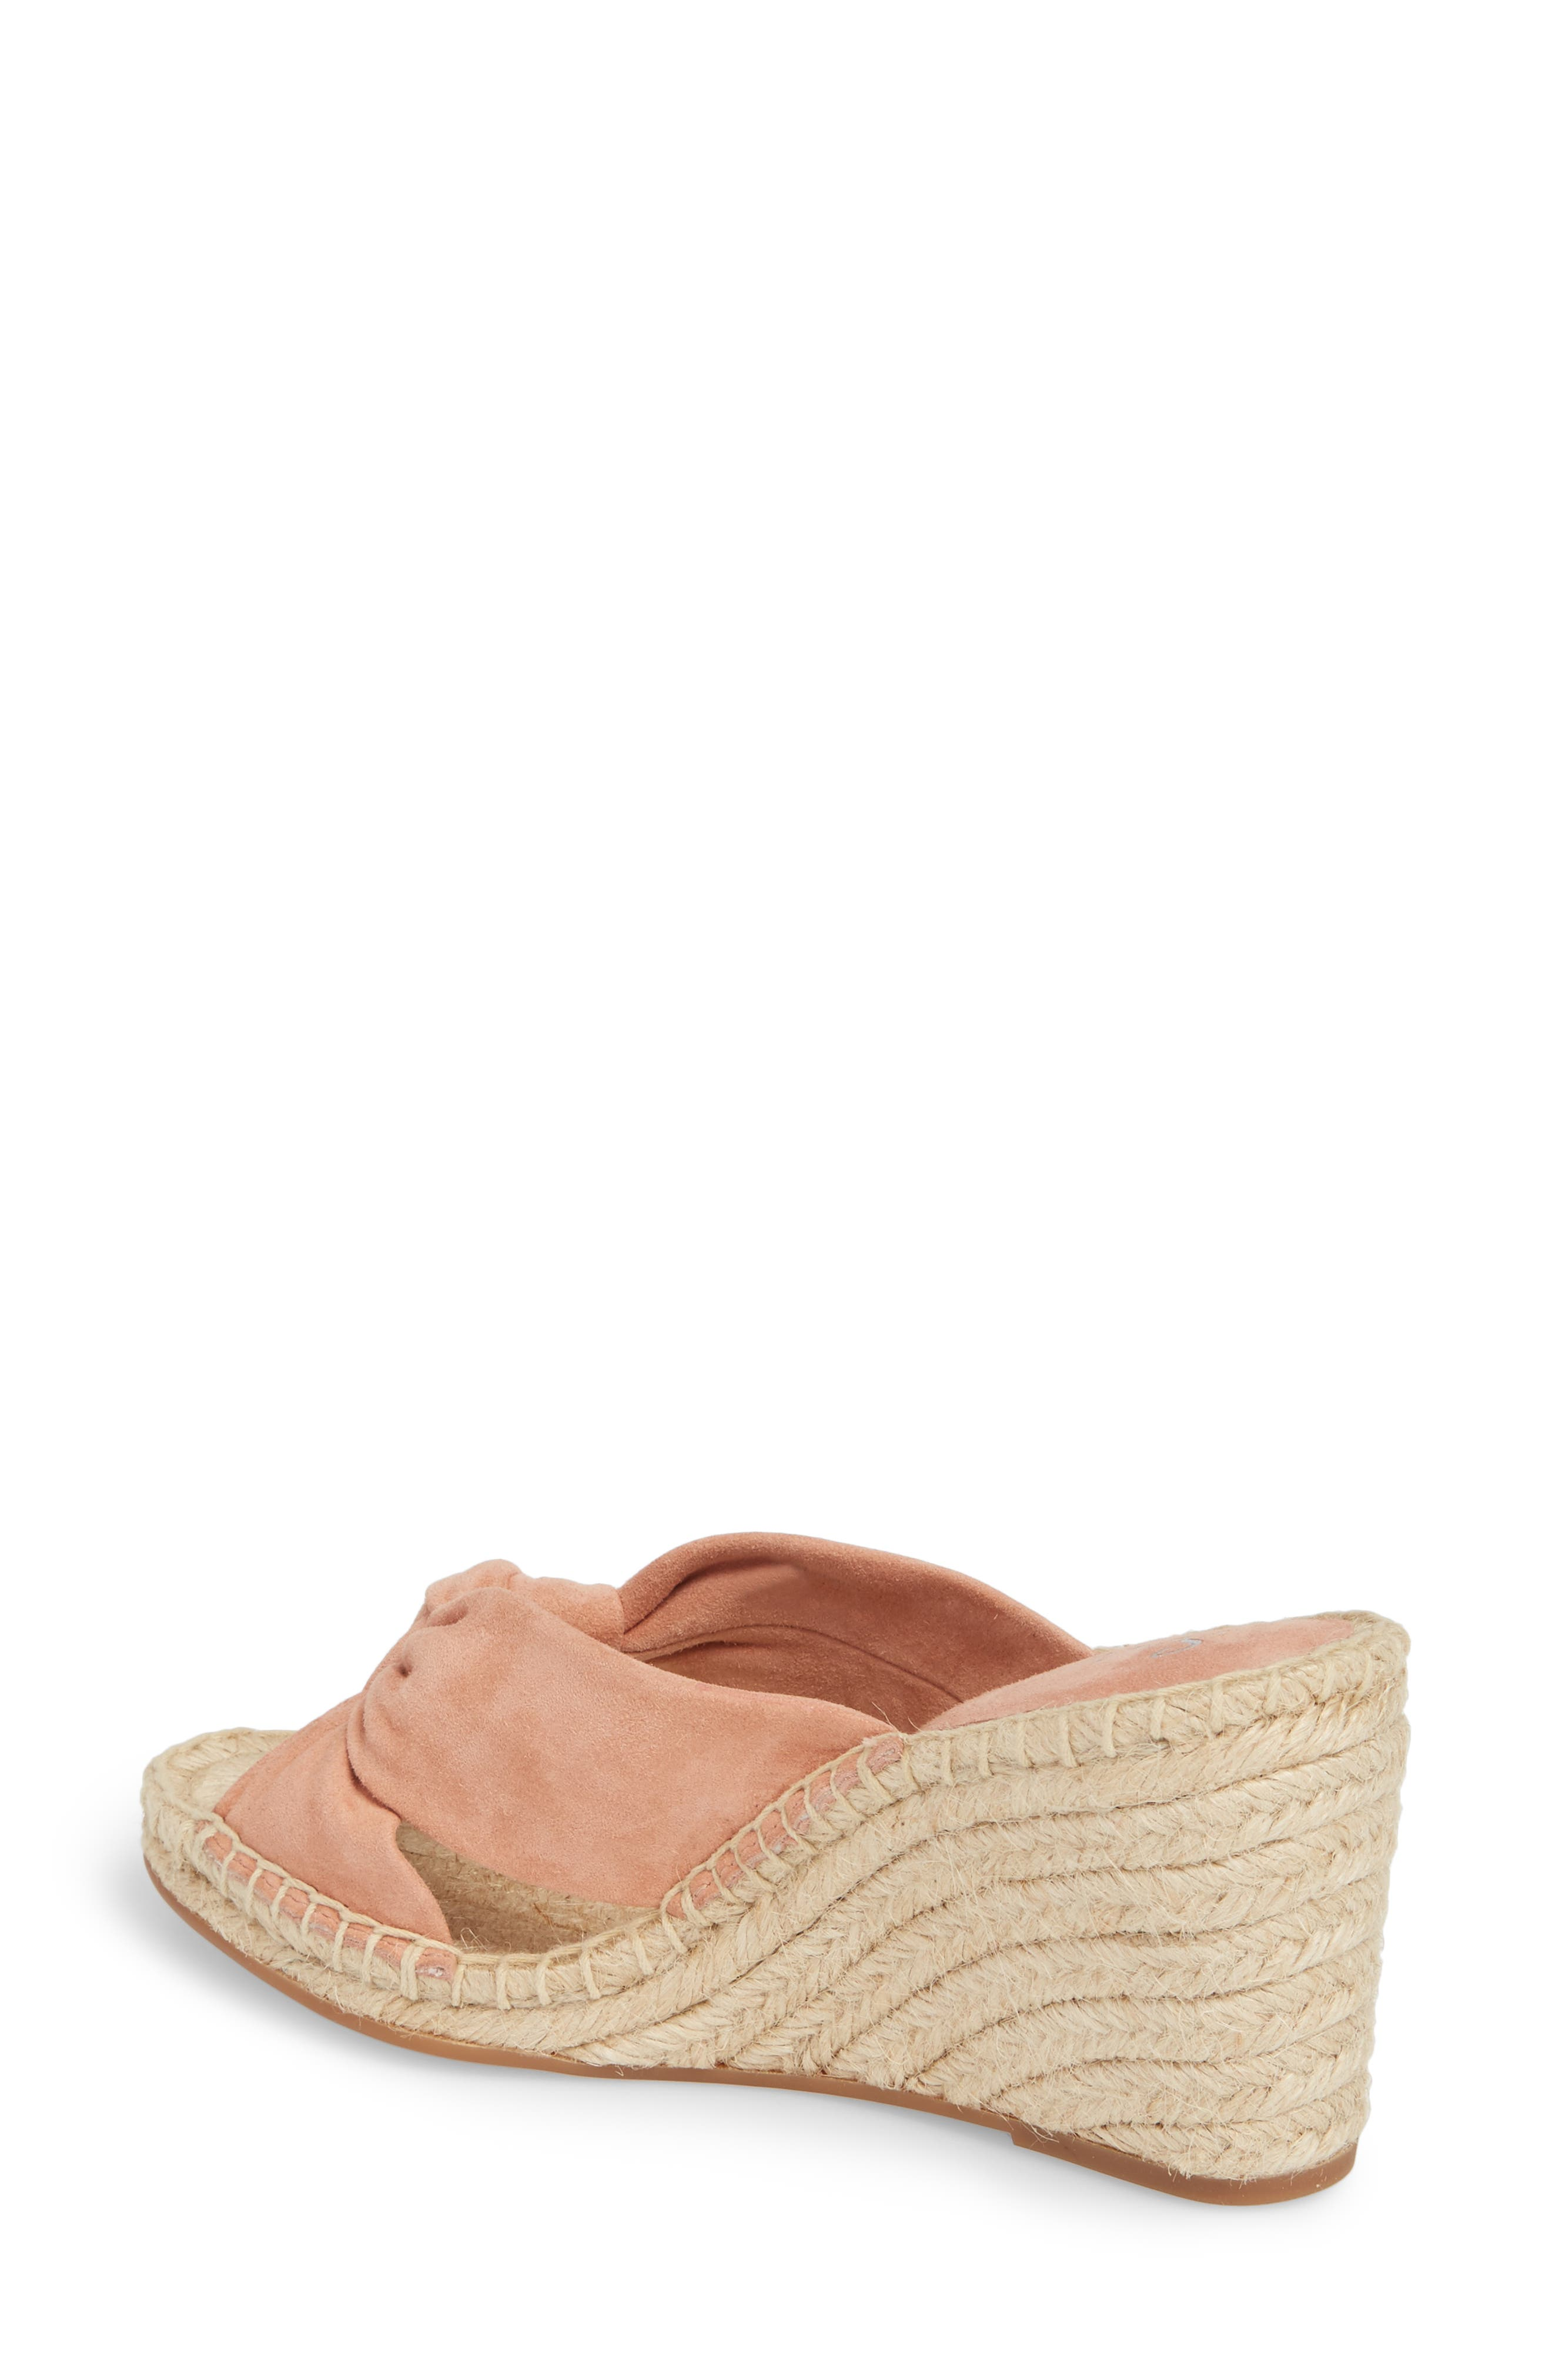 Bautista Knotted Wedge Sandal,                             Alternate thumbnail 2, color,                             DARK BLUSH SUEDE